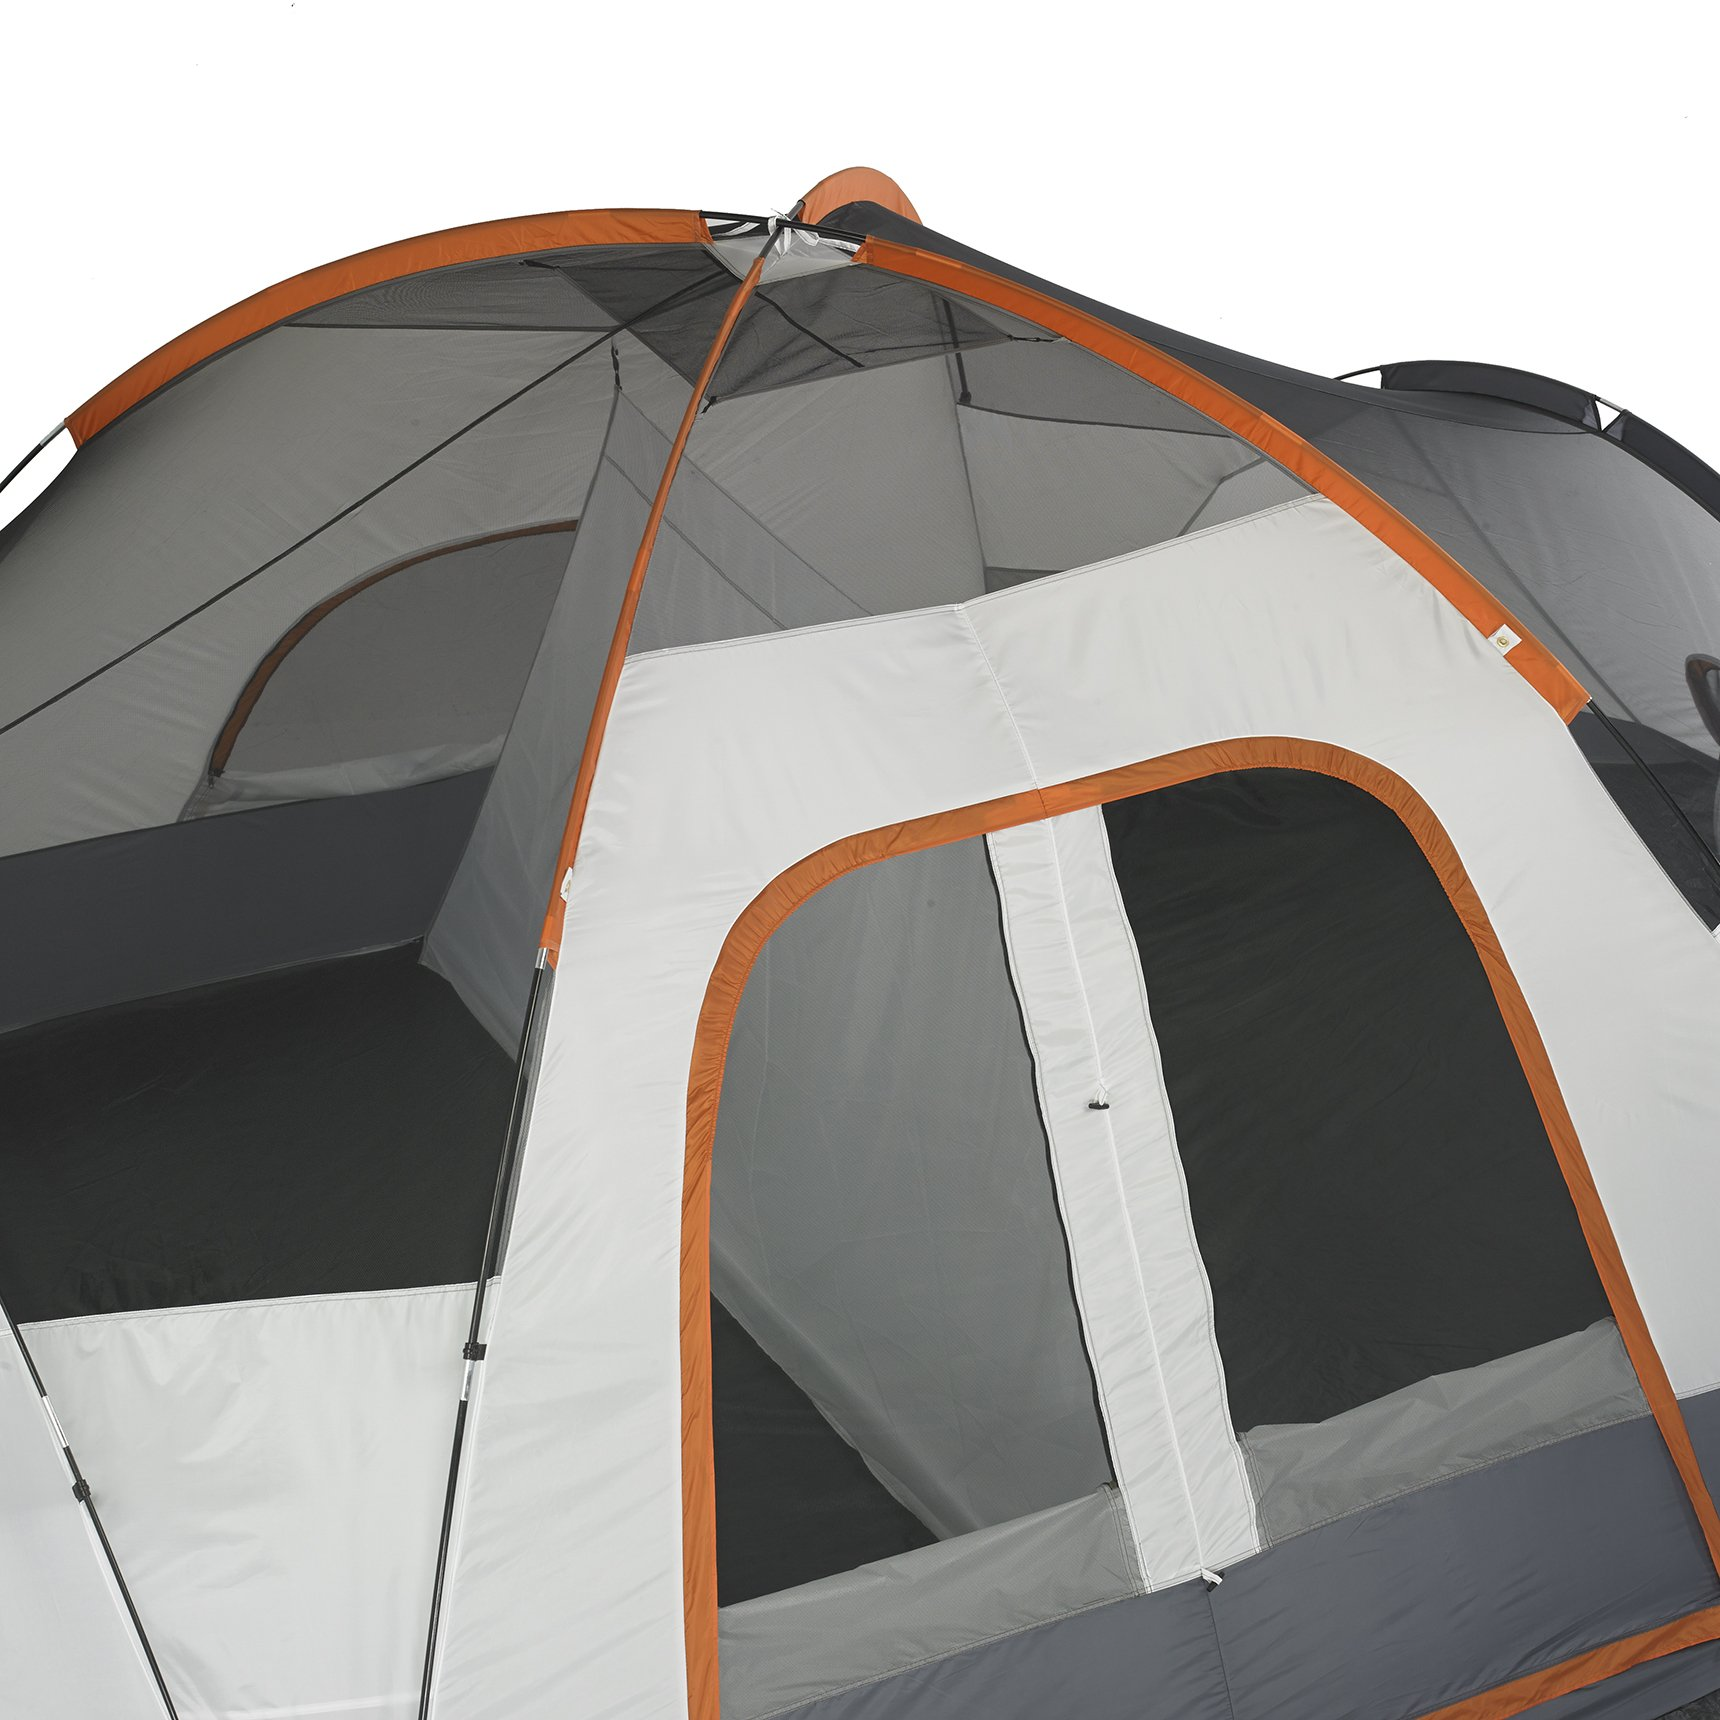 Mountain Trails Grand Pass Tent - 10 Person by Mountain Trails (Image #2)